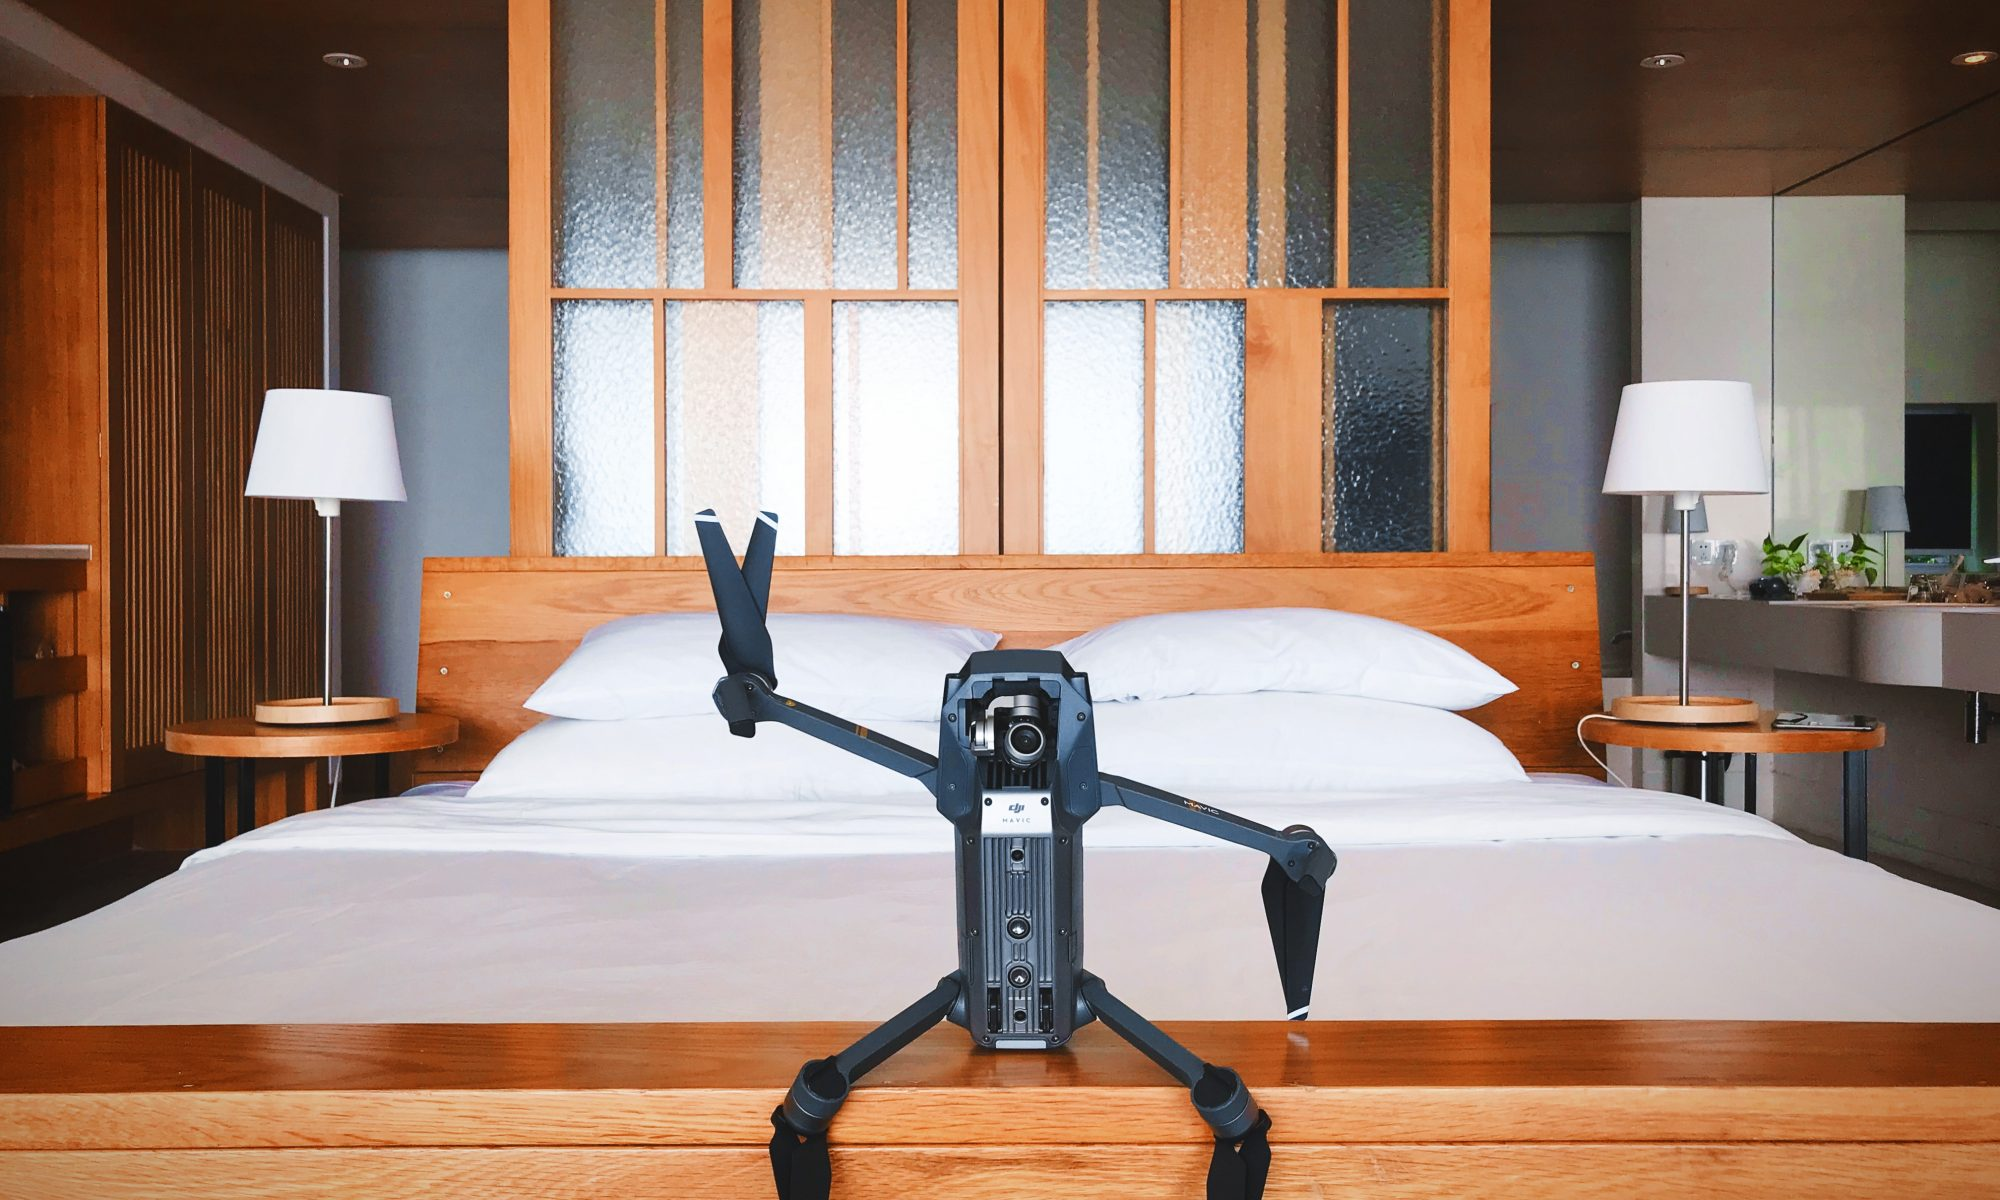 robot-on-bed